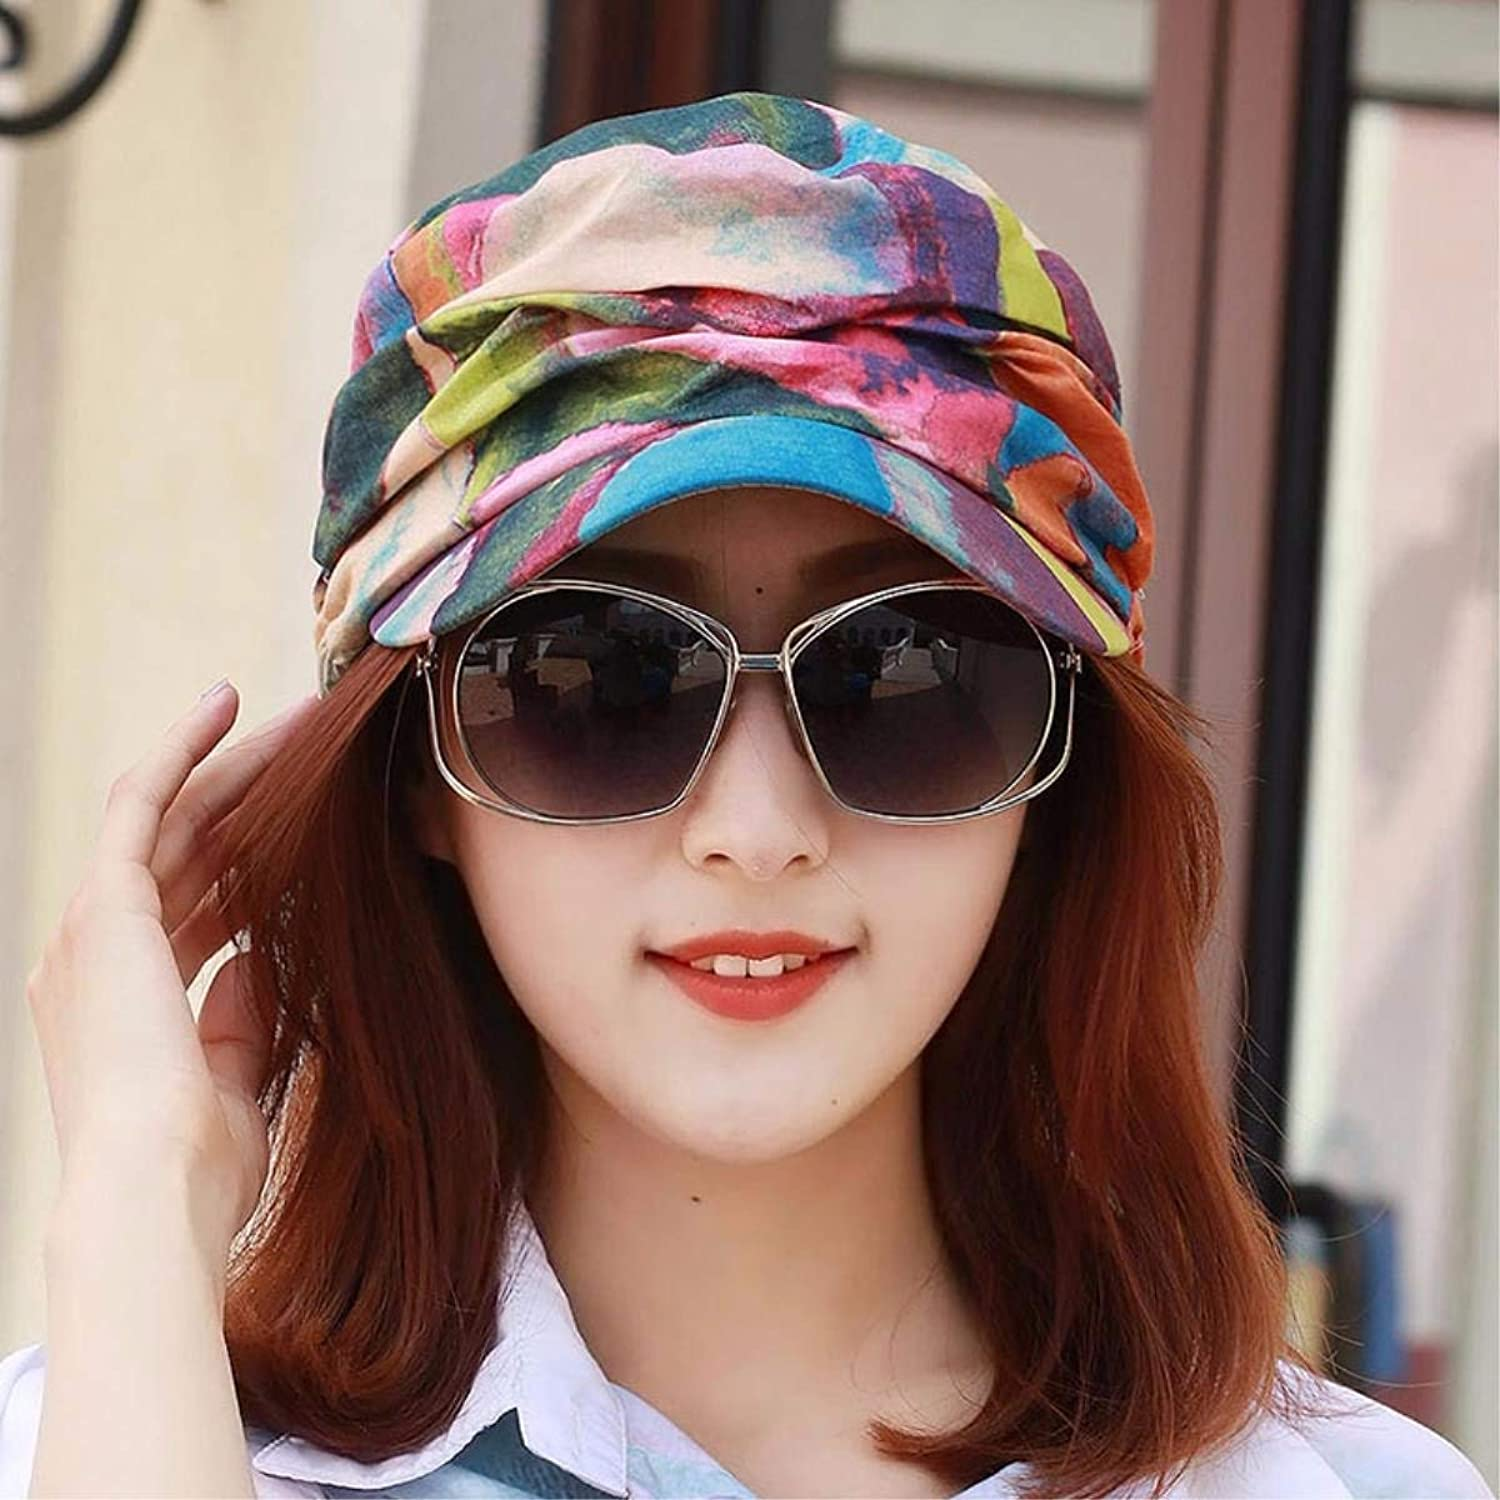 BRNEBN Hat female spring and summer cap flat top hat visor beach hat sun cap out of play.